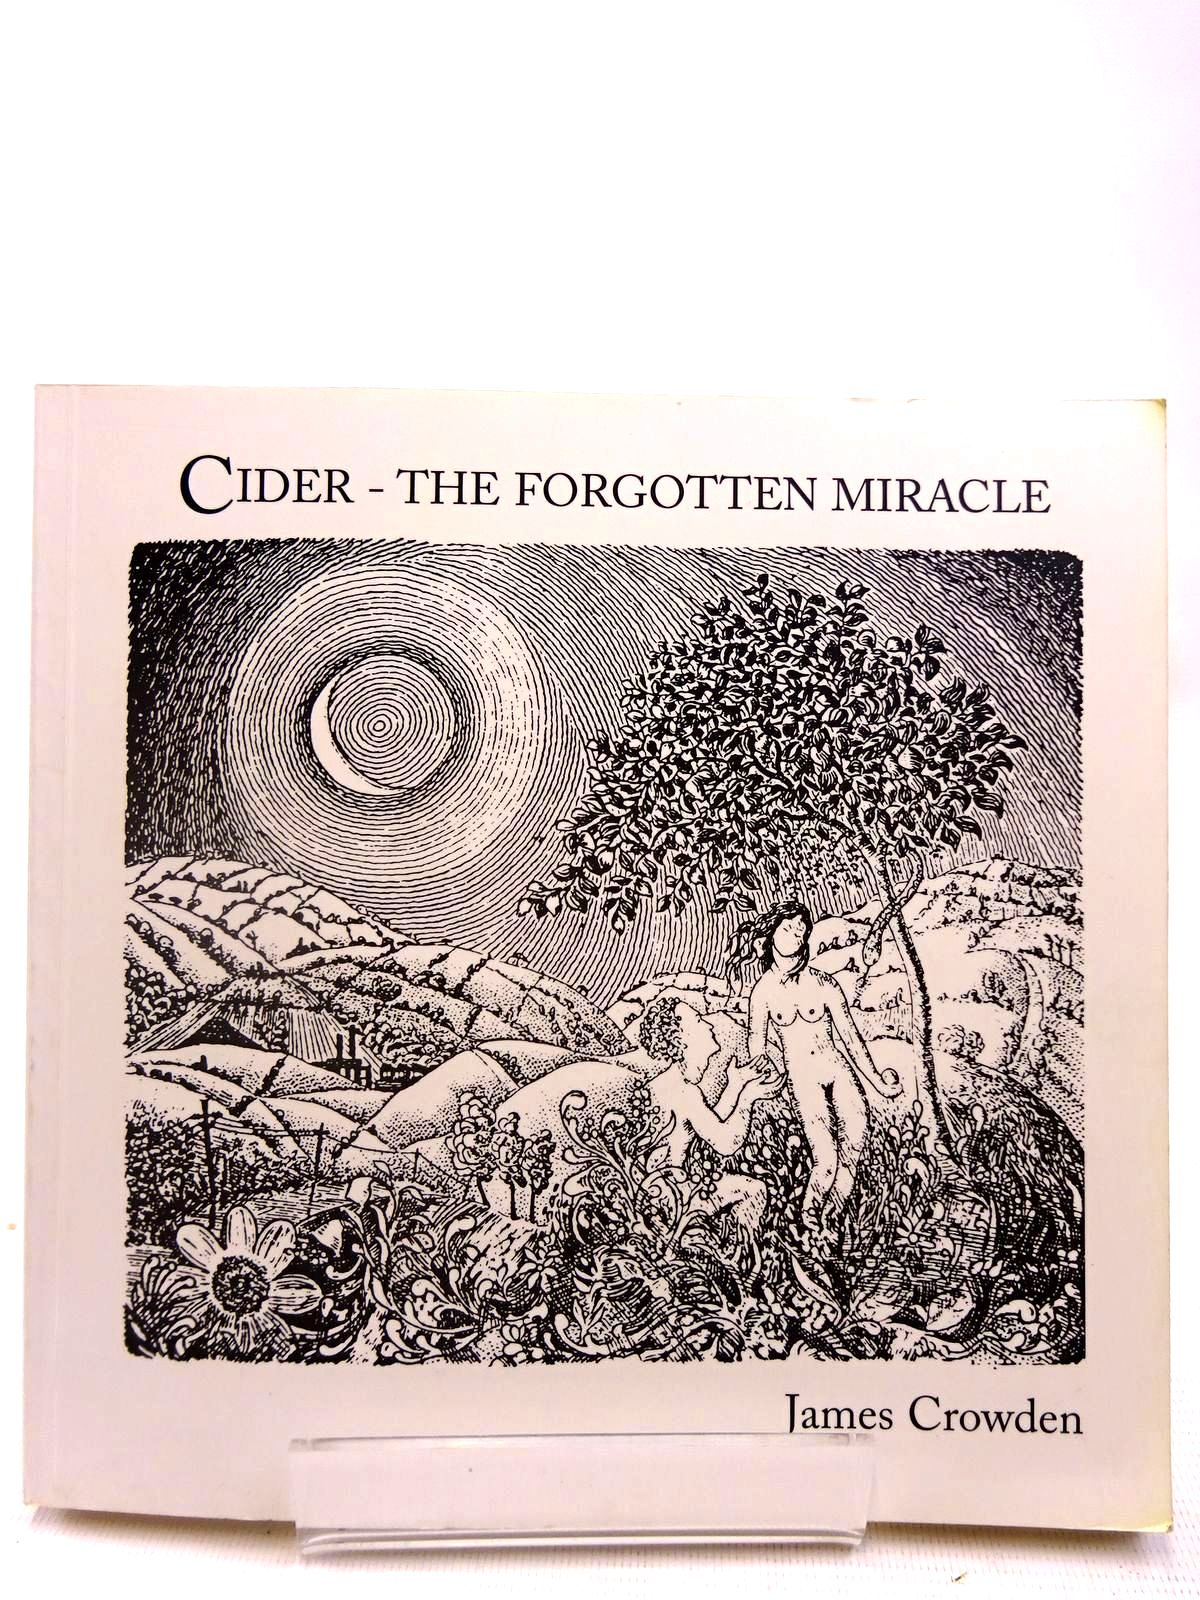 Photo of CIDER - THE FORGOTTEN MIRACLE written by Crowden, James illustrated by Hanscomb, Brian published by Cyder Press 2 (STOCK CODE: 2127729)  for sale by Stella & Rose's Books